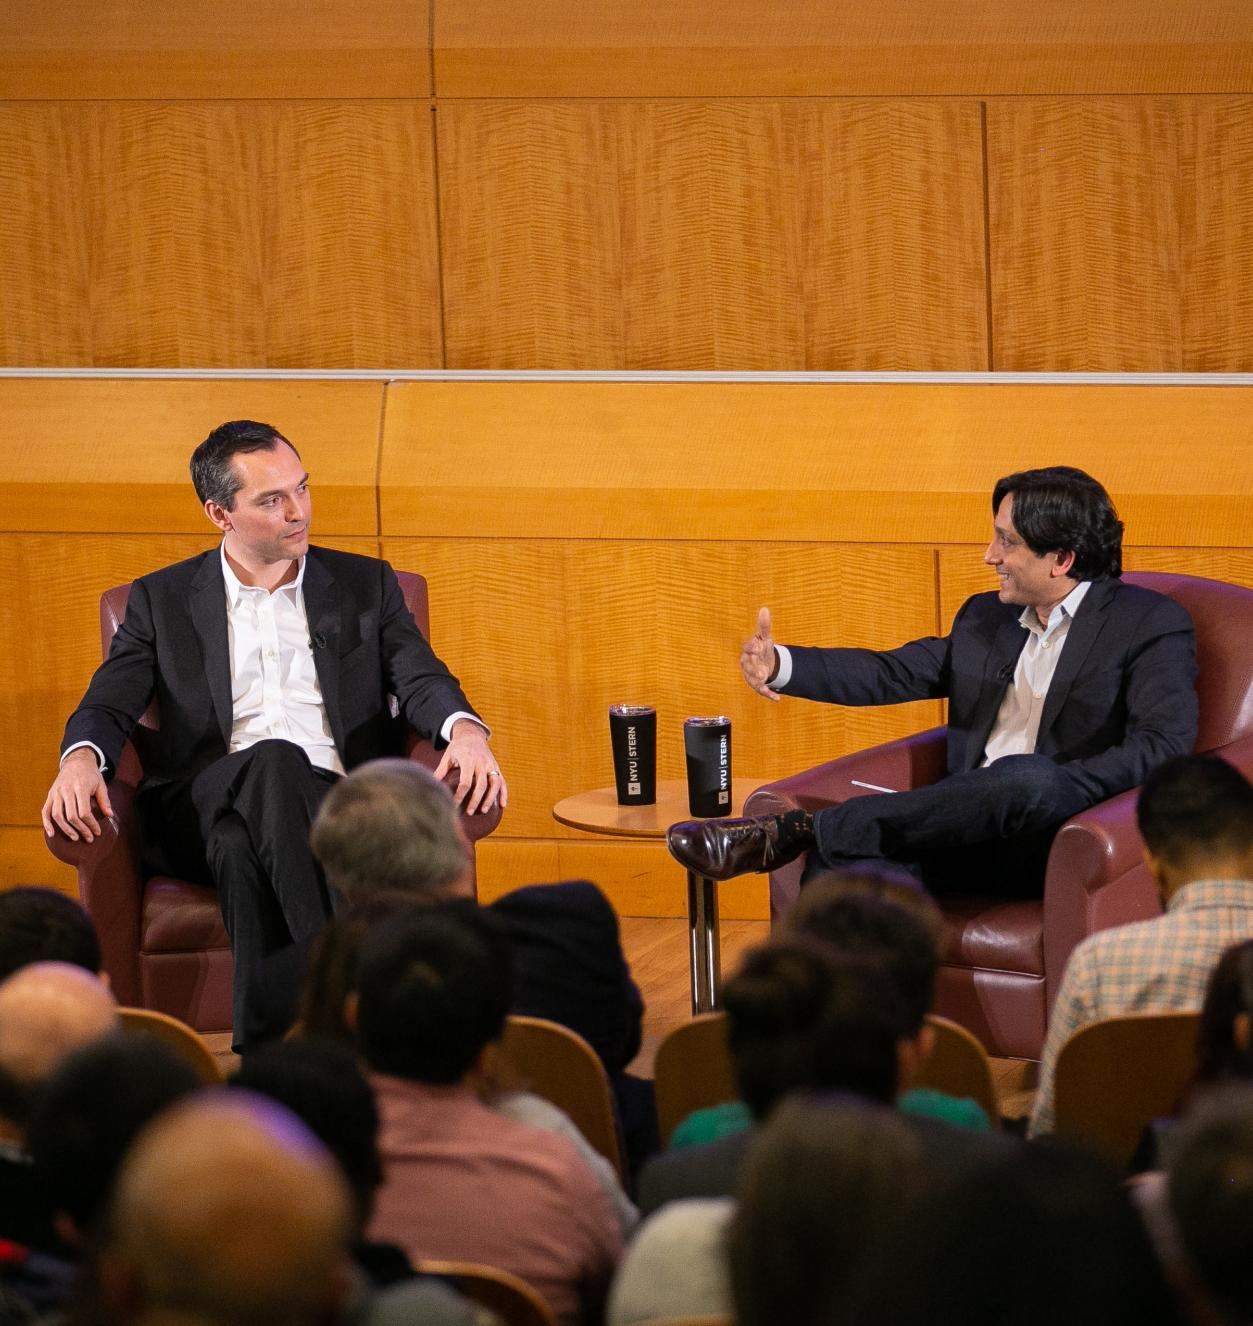 Airbnb Co-Founder Nathan Blecharzyk and Arun Sundarajan